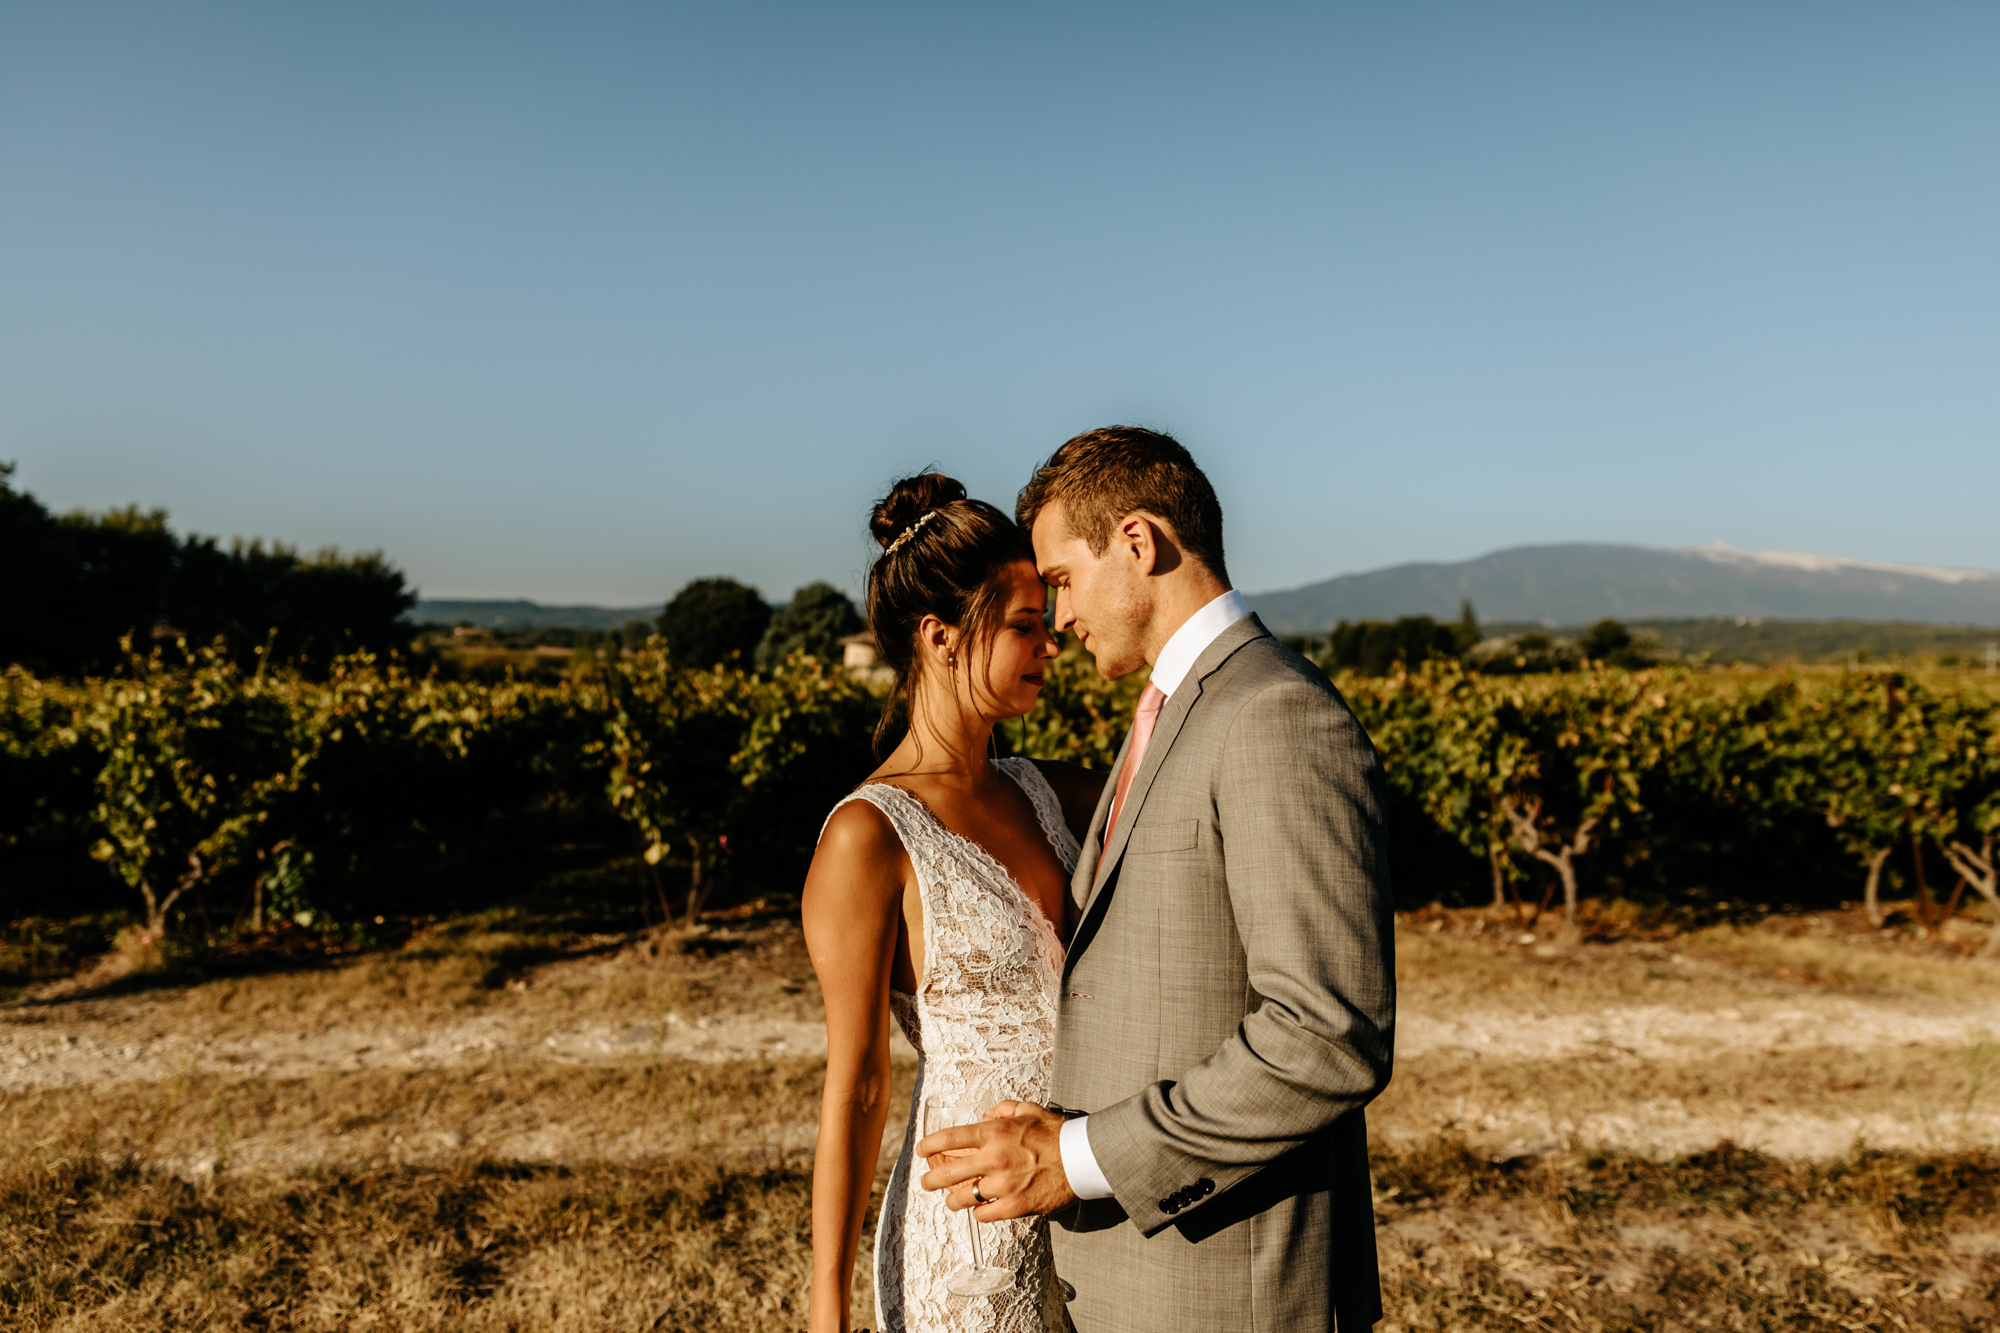 Photography wedding in provence  - castel mazan - Karol R. Photographie - karol robache